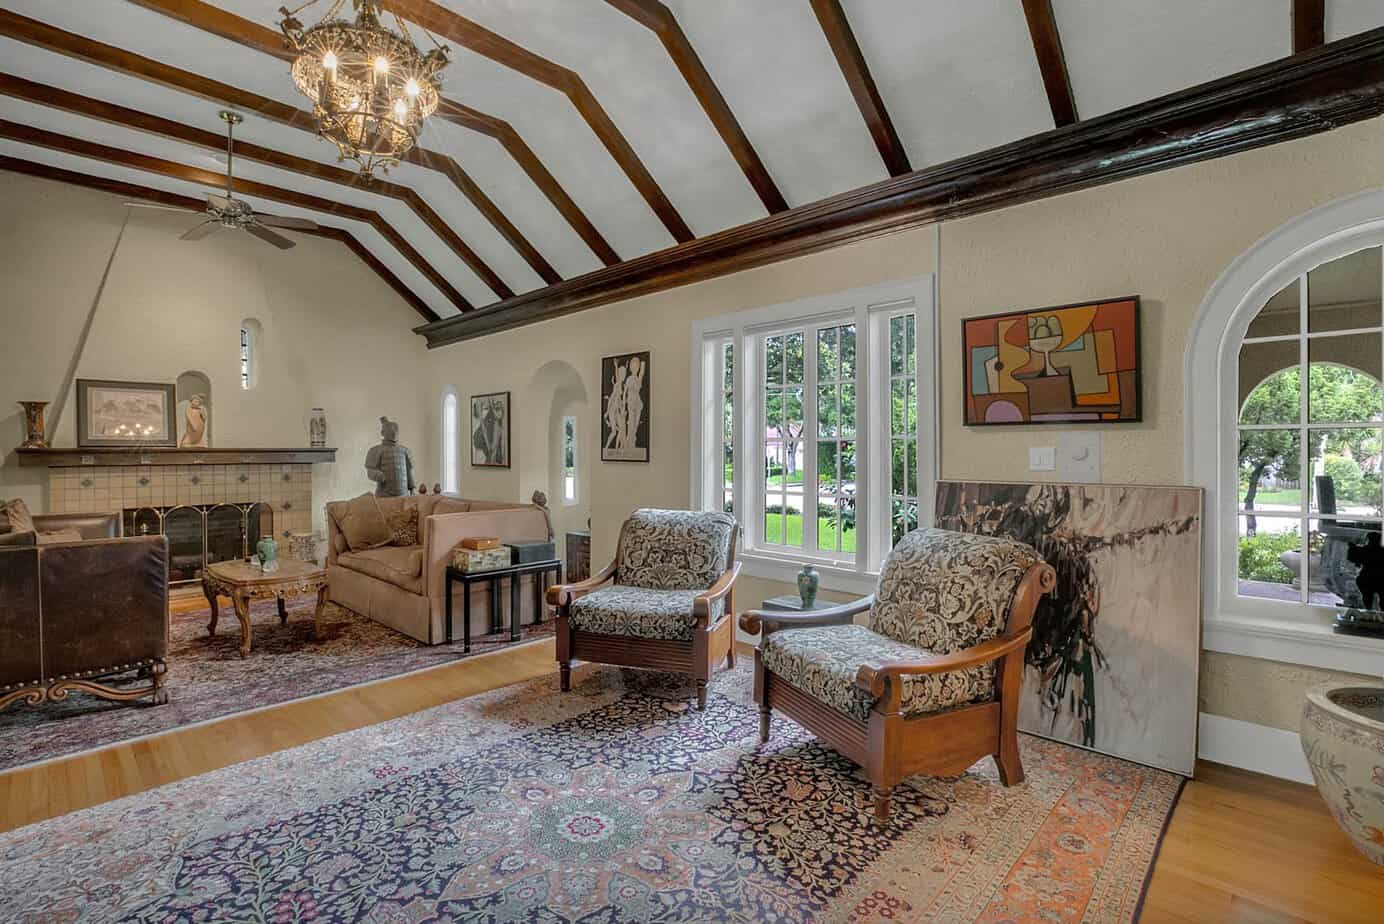 Picture of a grand room measuring 35x20 beamed with two chairs, blue rugs, decorative spanish fire place, and arched windows in the home for sale at 4024 W Bay to Bay Tampa FL 33629